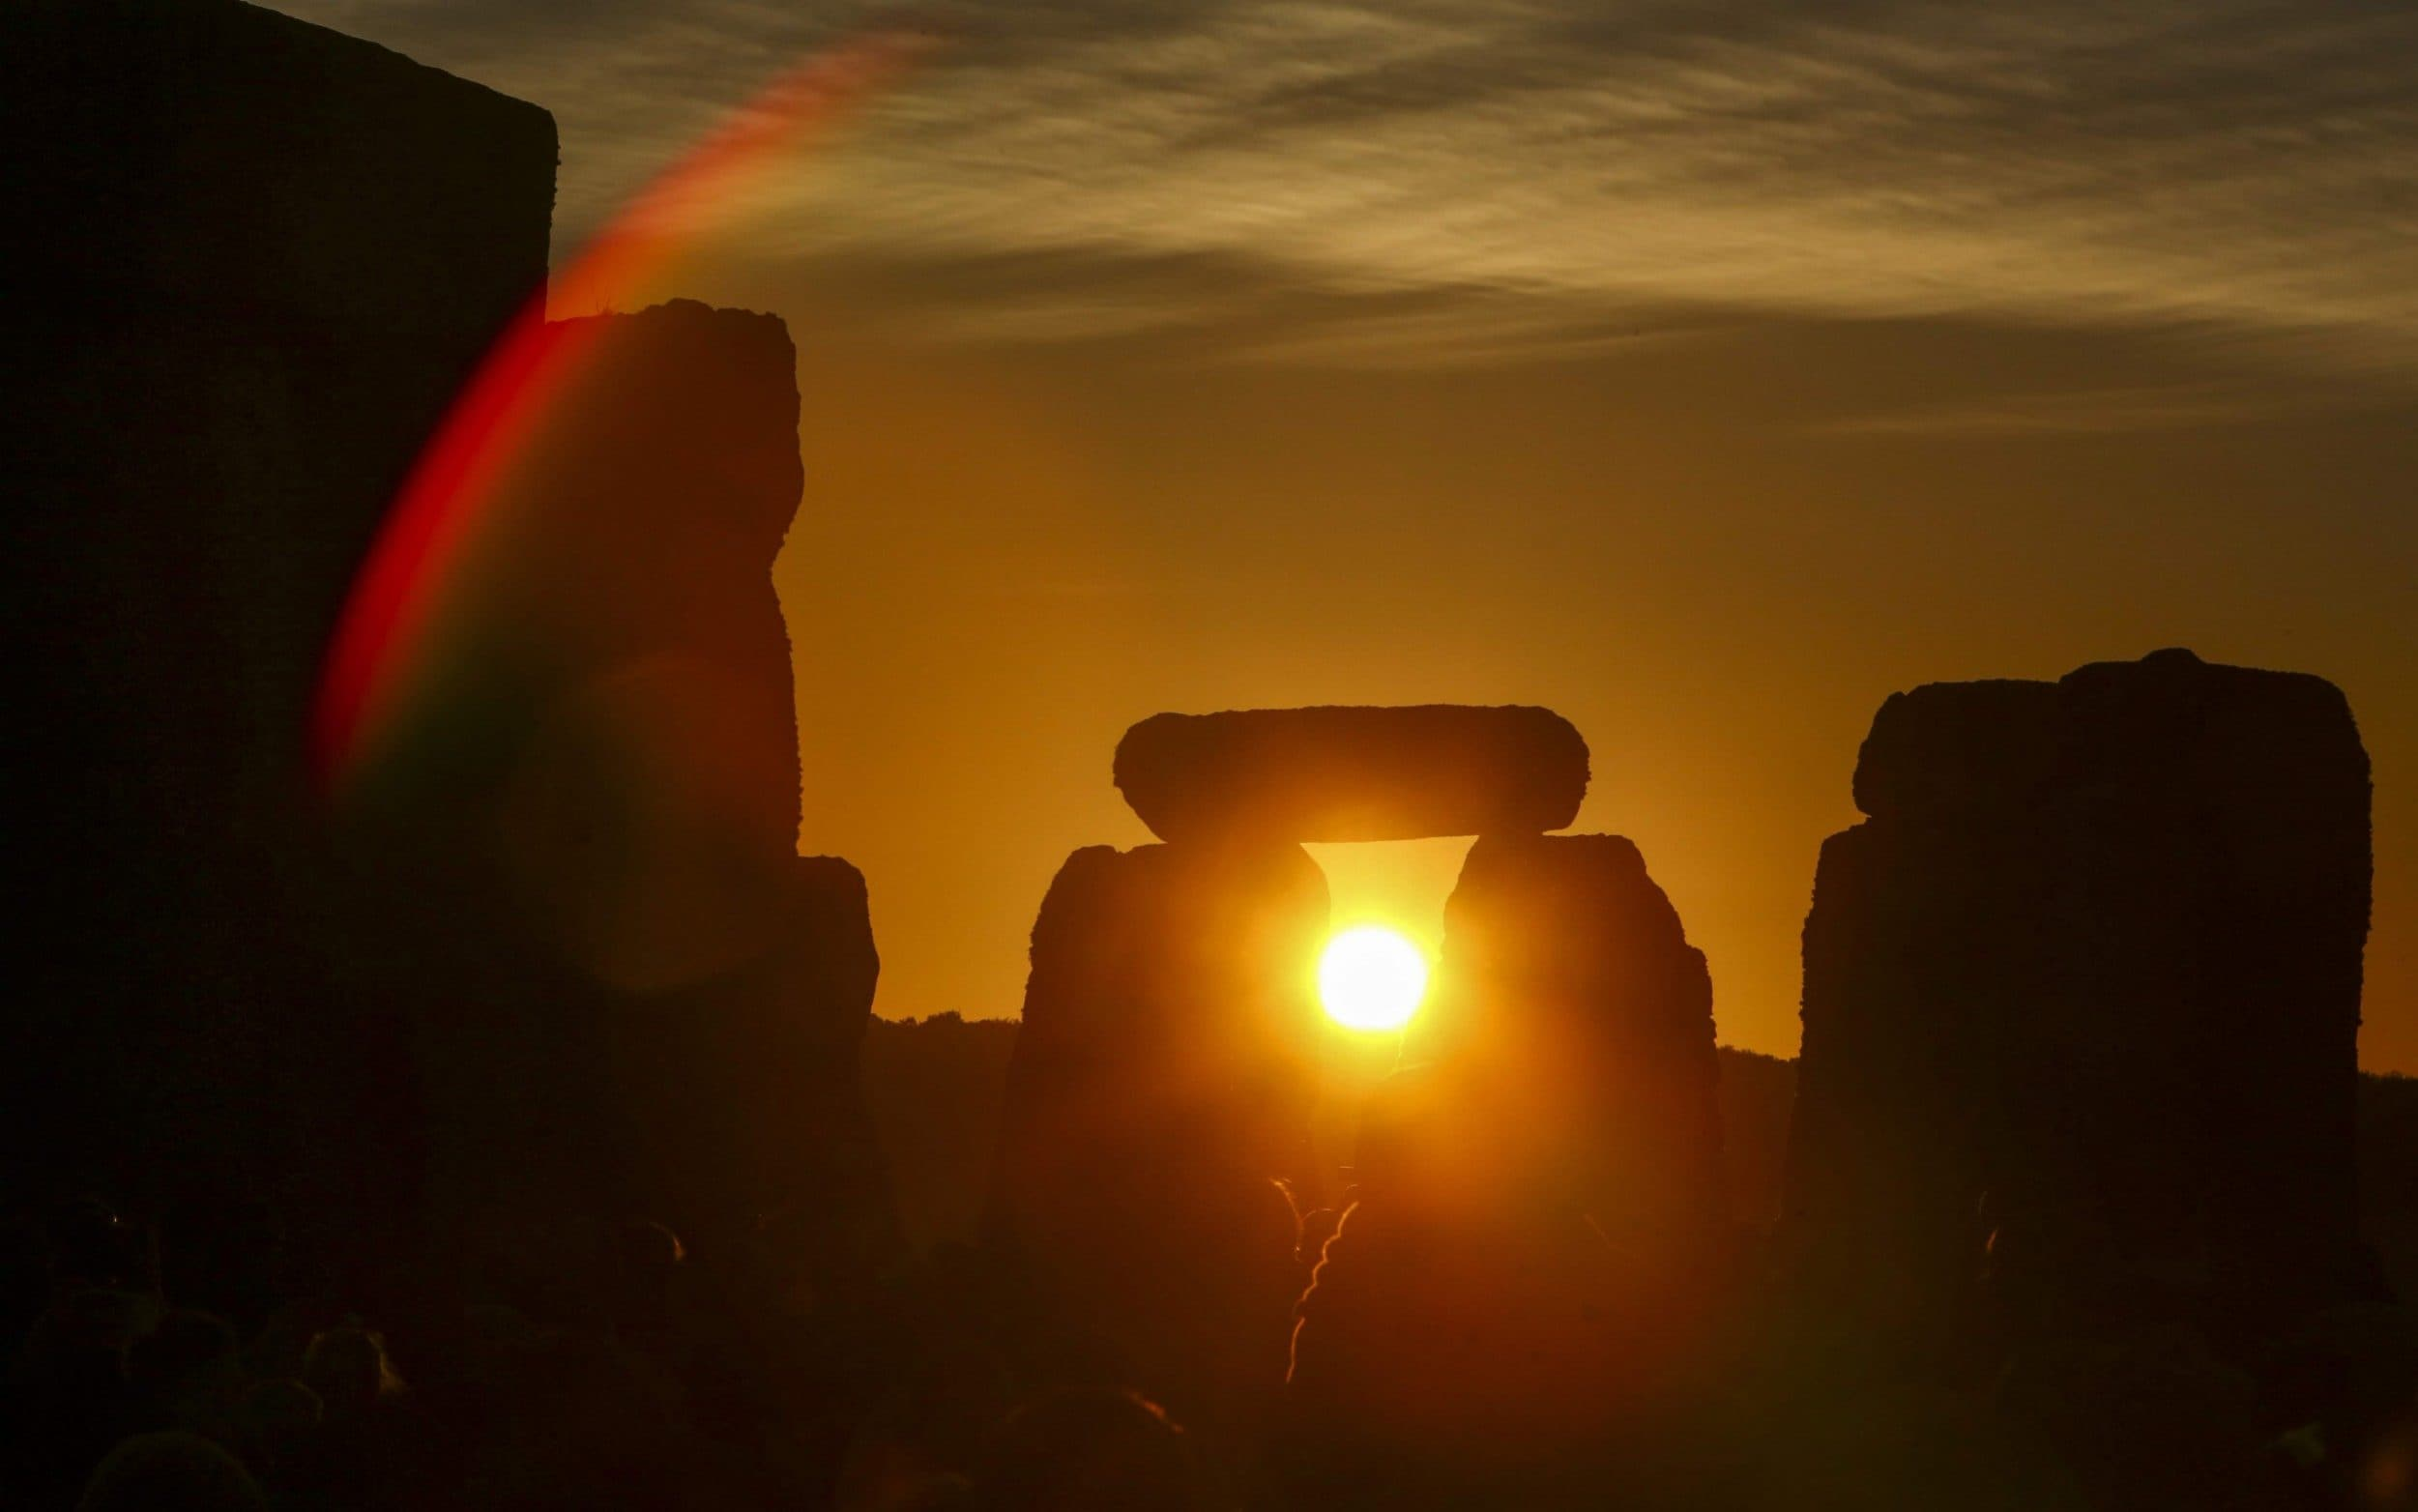 Summer solstice 2020: everything you need to know about the longest day of the year